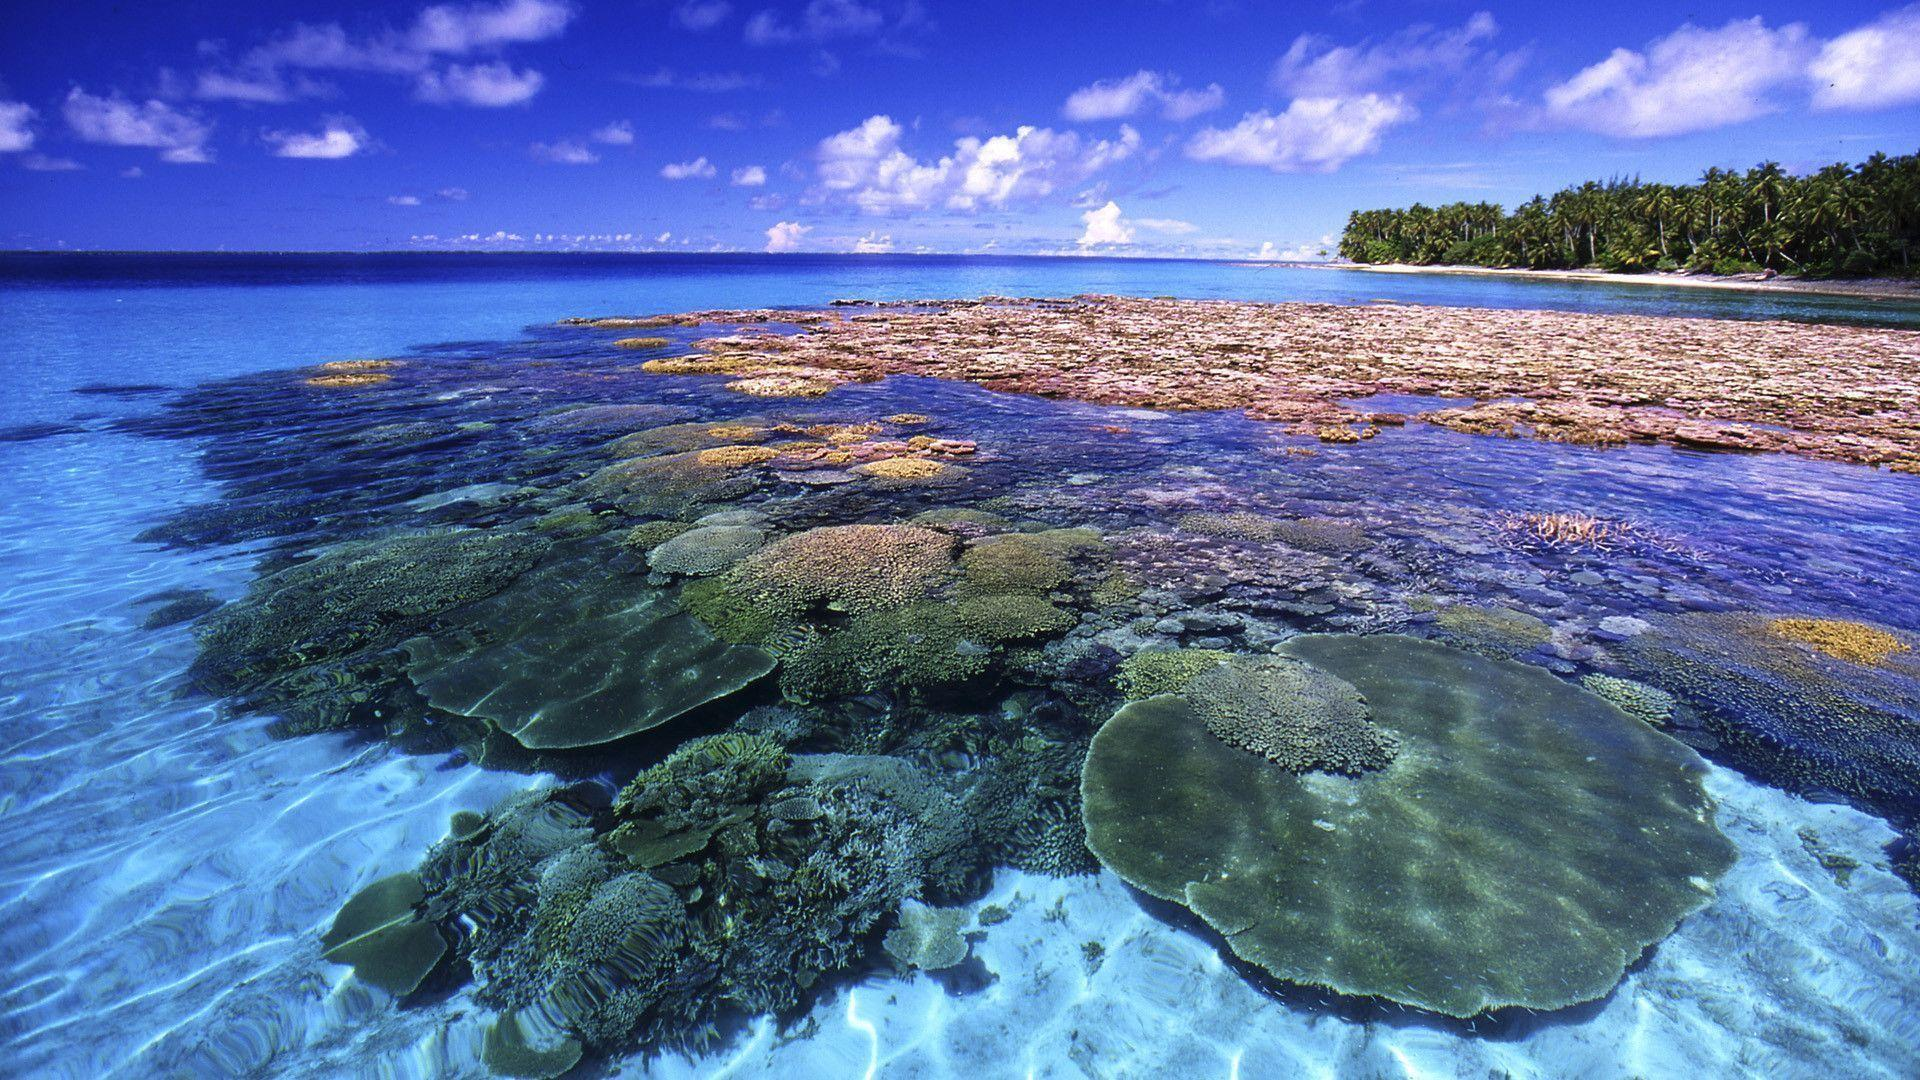 HD Beautiful Coral Reef Wallpaper | Download Free - 60780